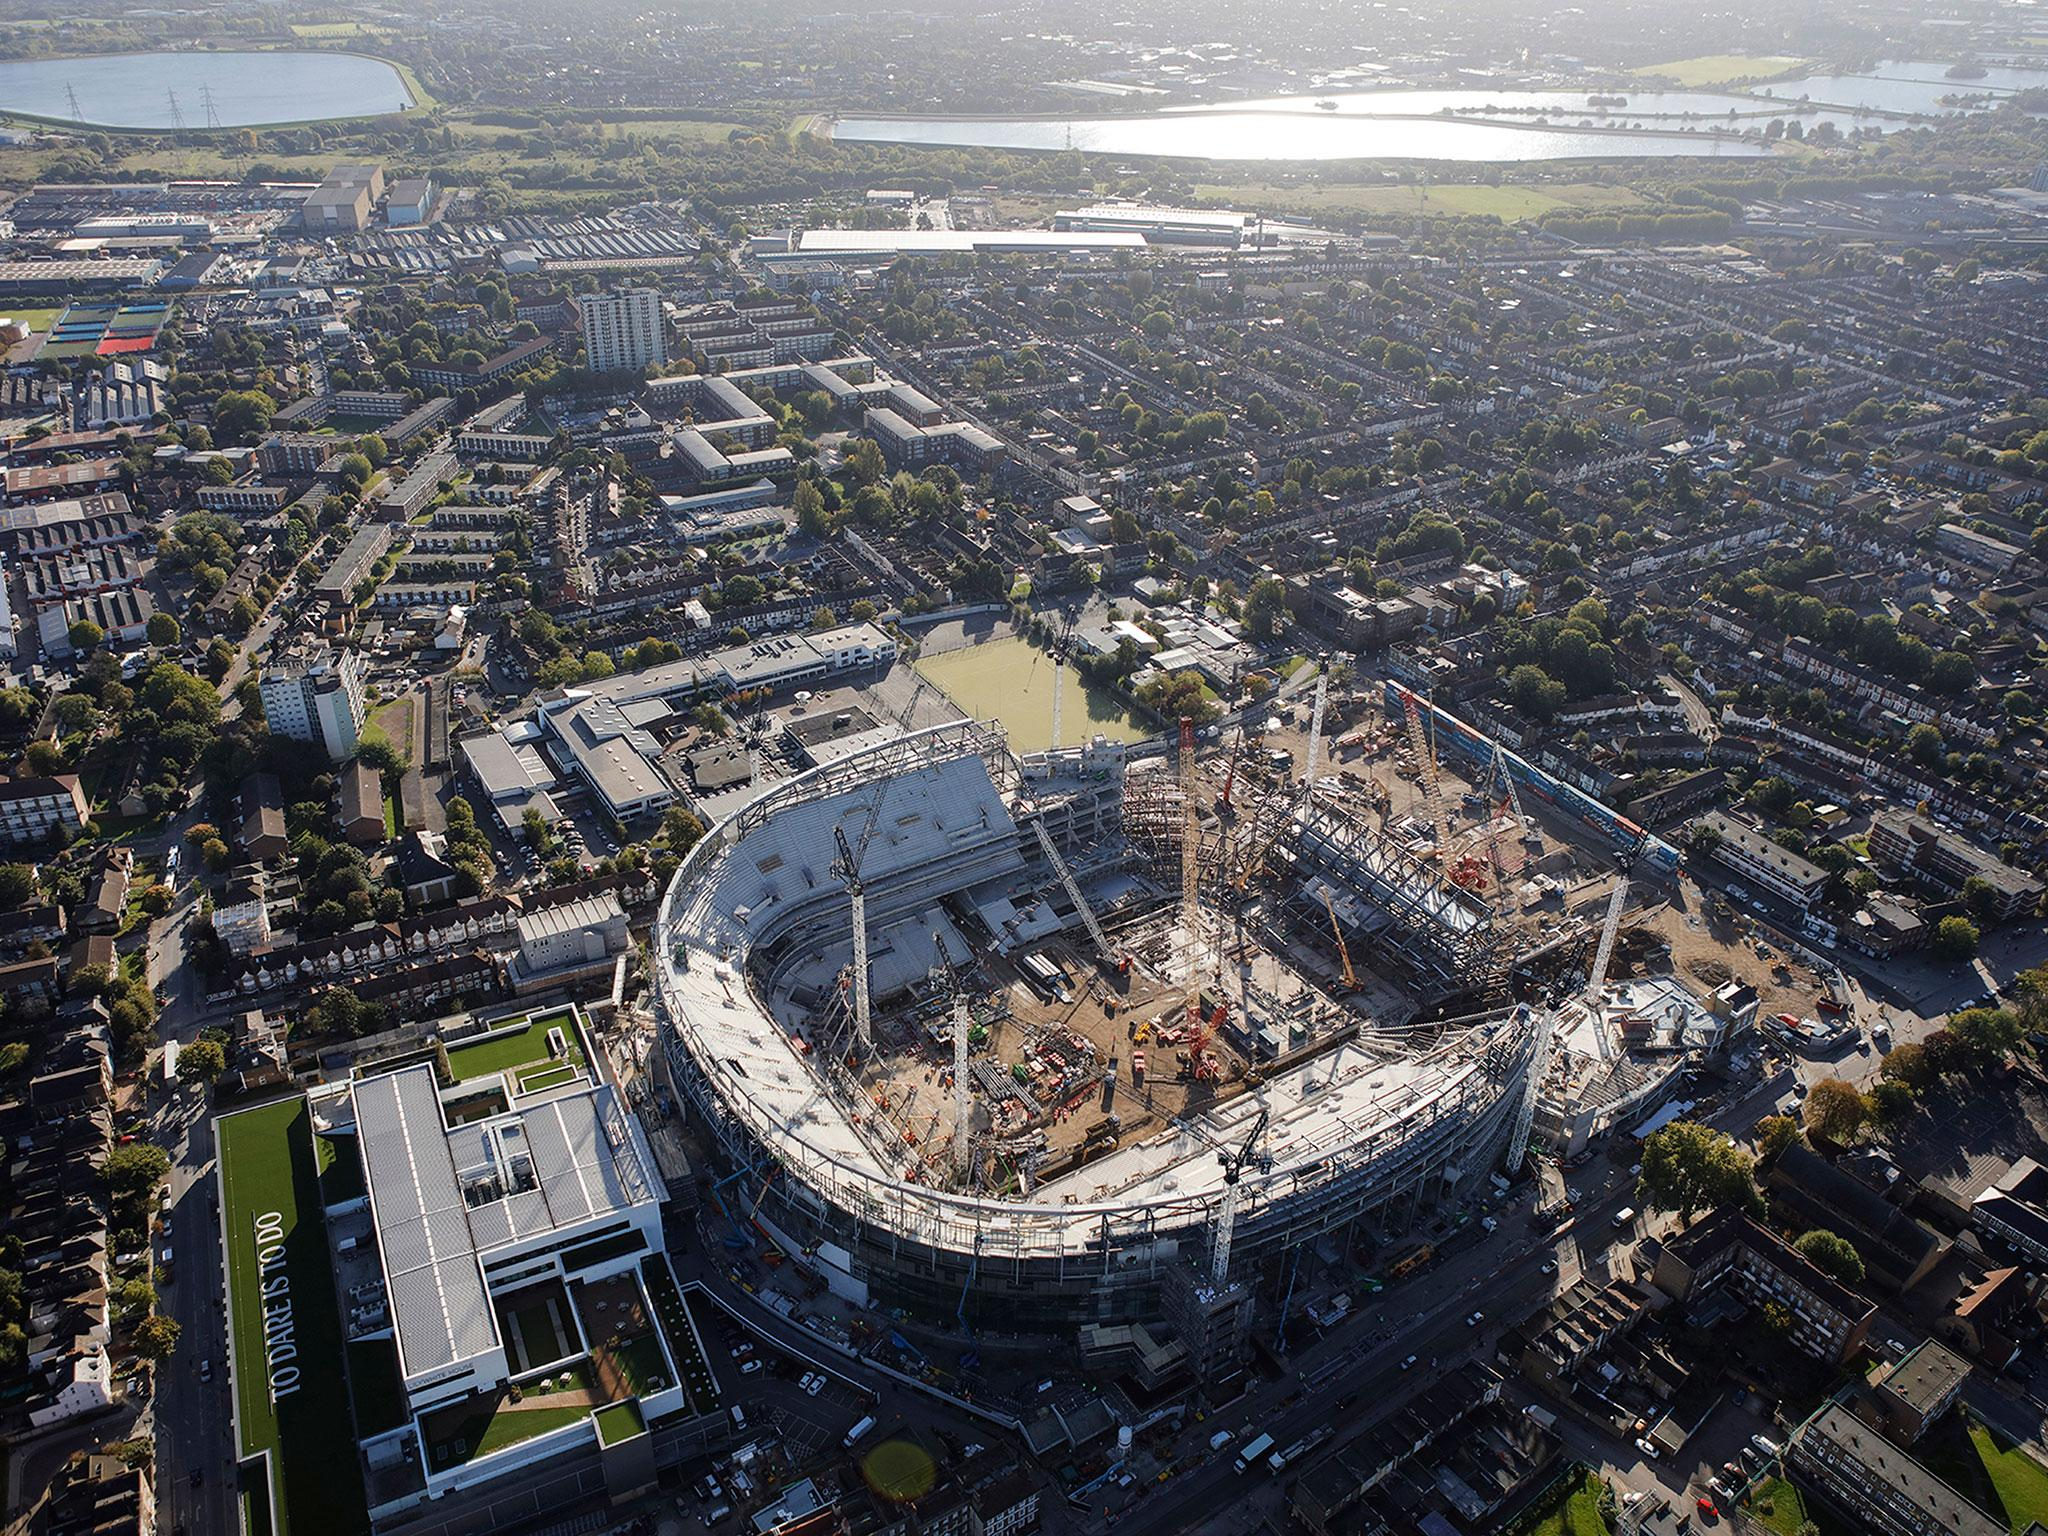 Tottenham set to play early games of 2018/19 season away from home as final touches made to new stadium